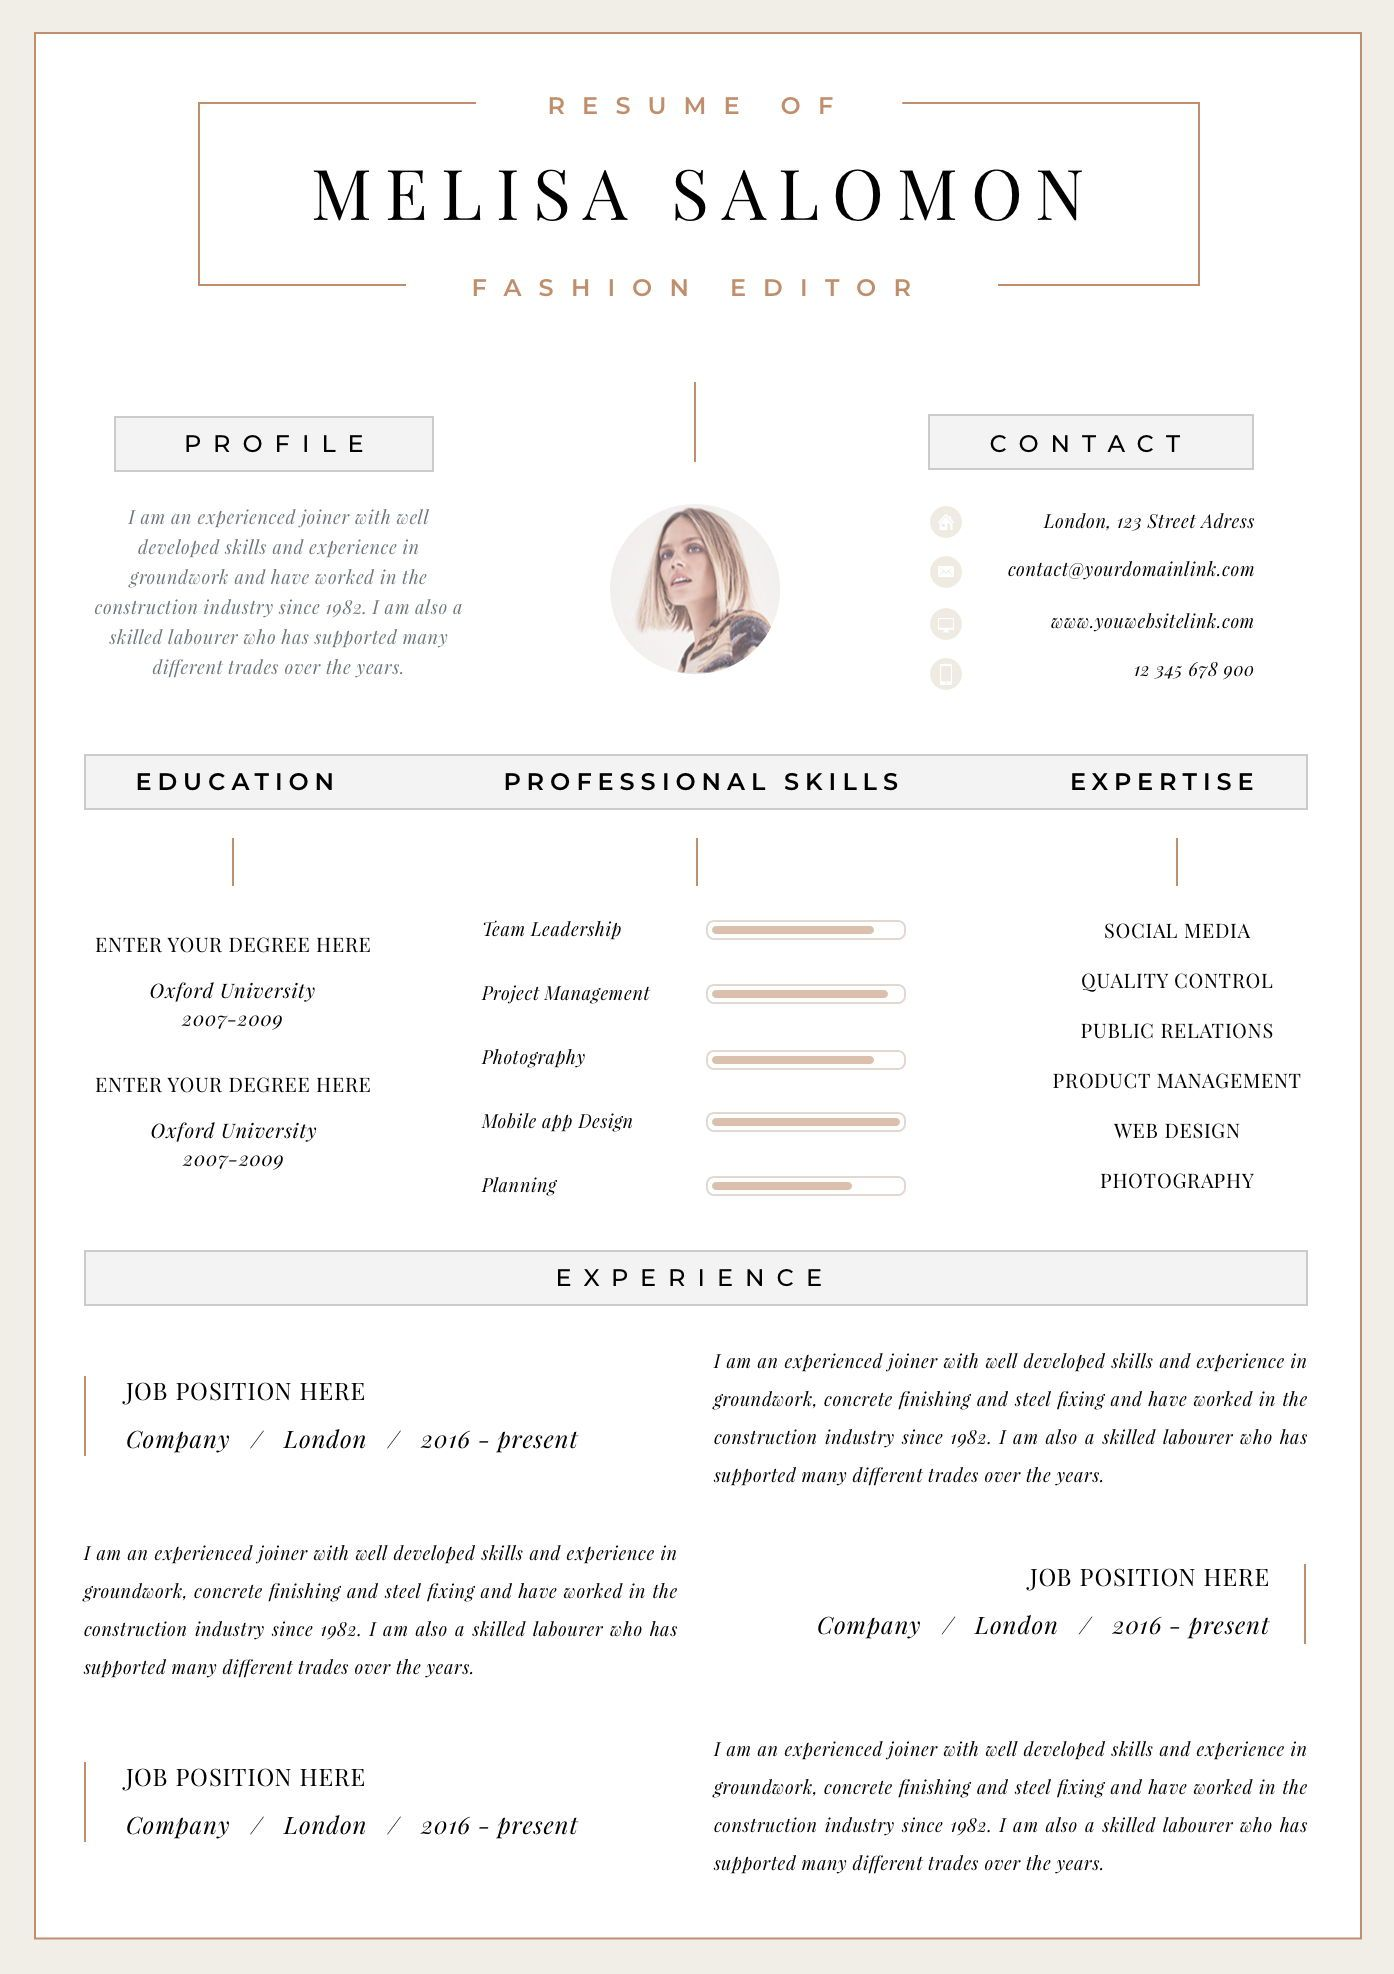 Professional Resume Template Clean Modern Resume Template One Page Resume Instant Download Resume Cv Template For Word Zurich Modern Resume Template Resume Template Professional Resume Template